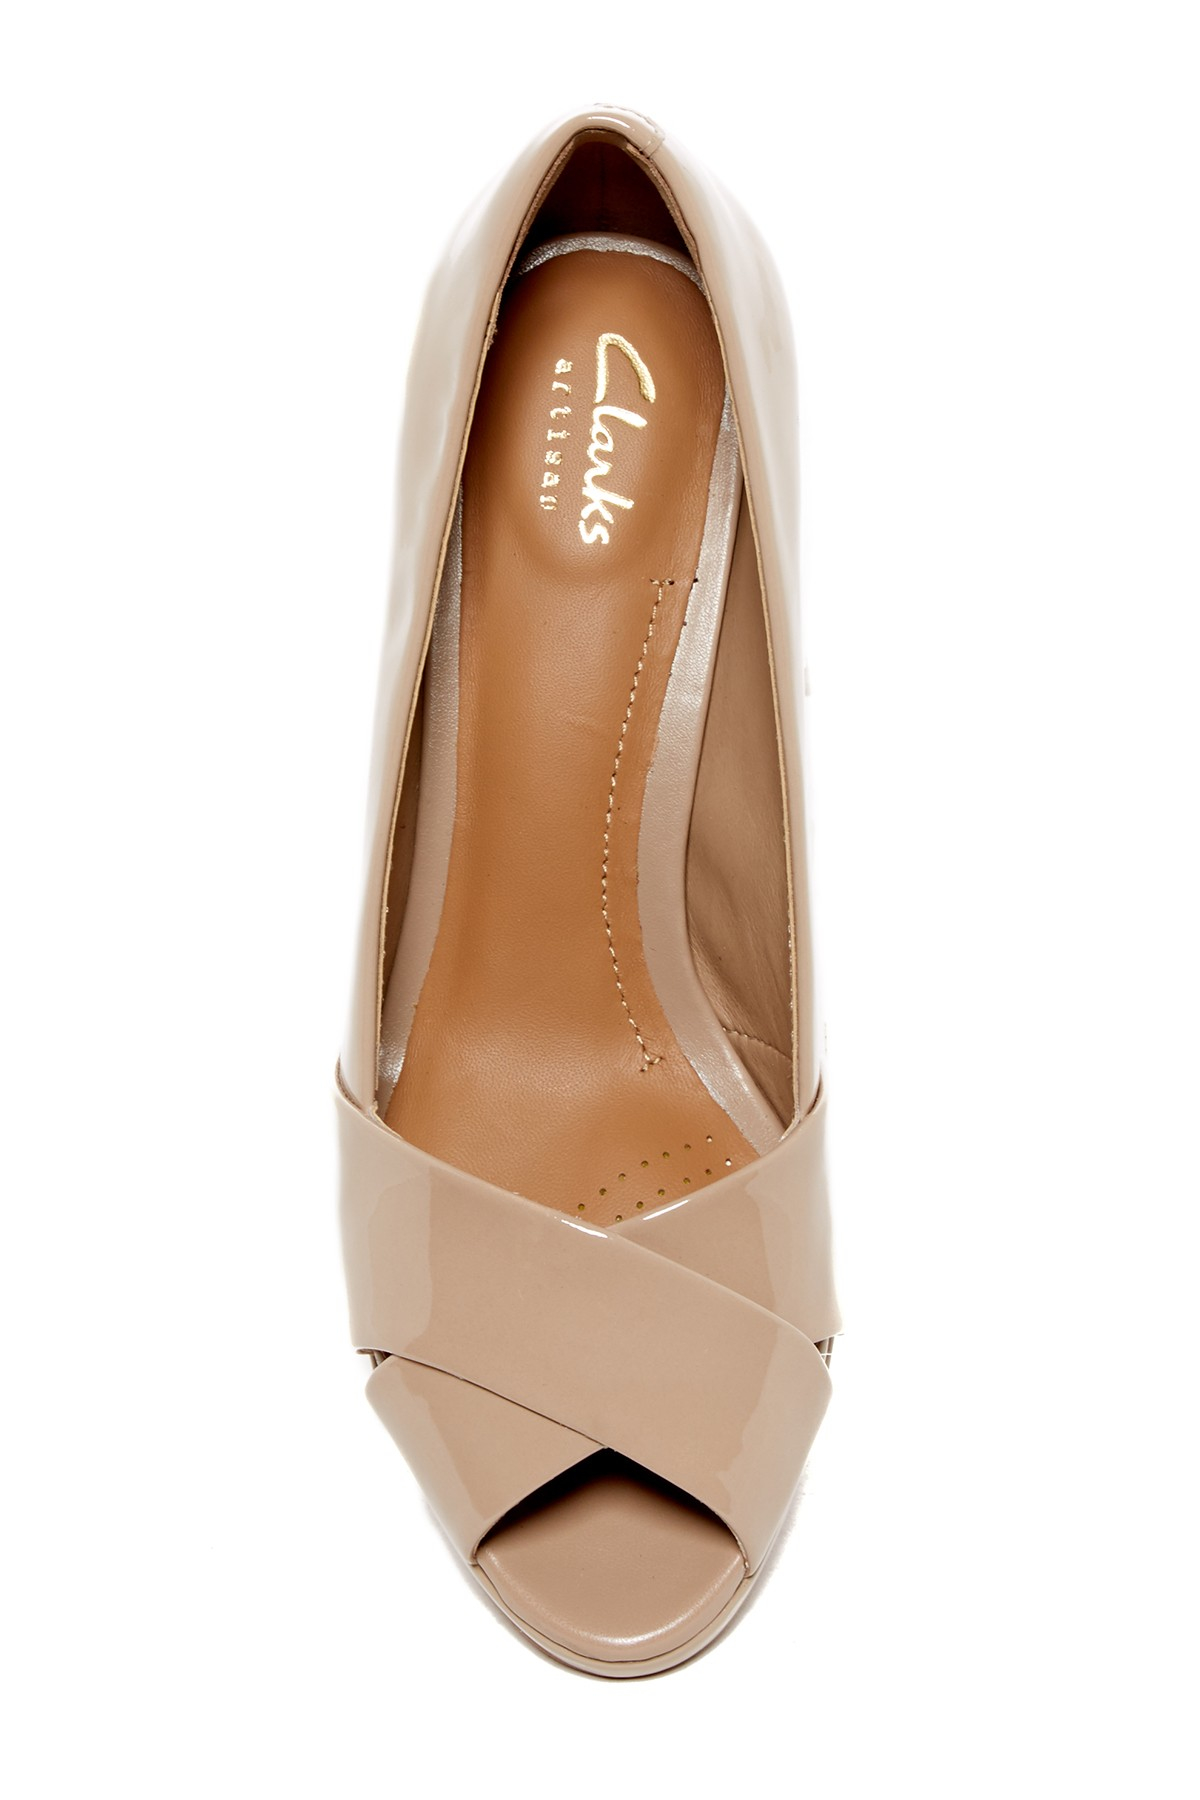 Clarks Peep Toe Shoes